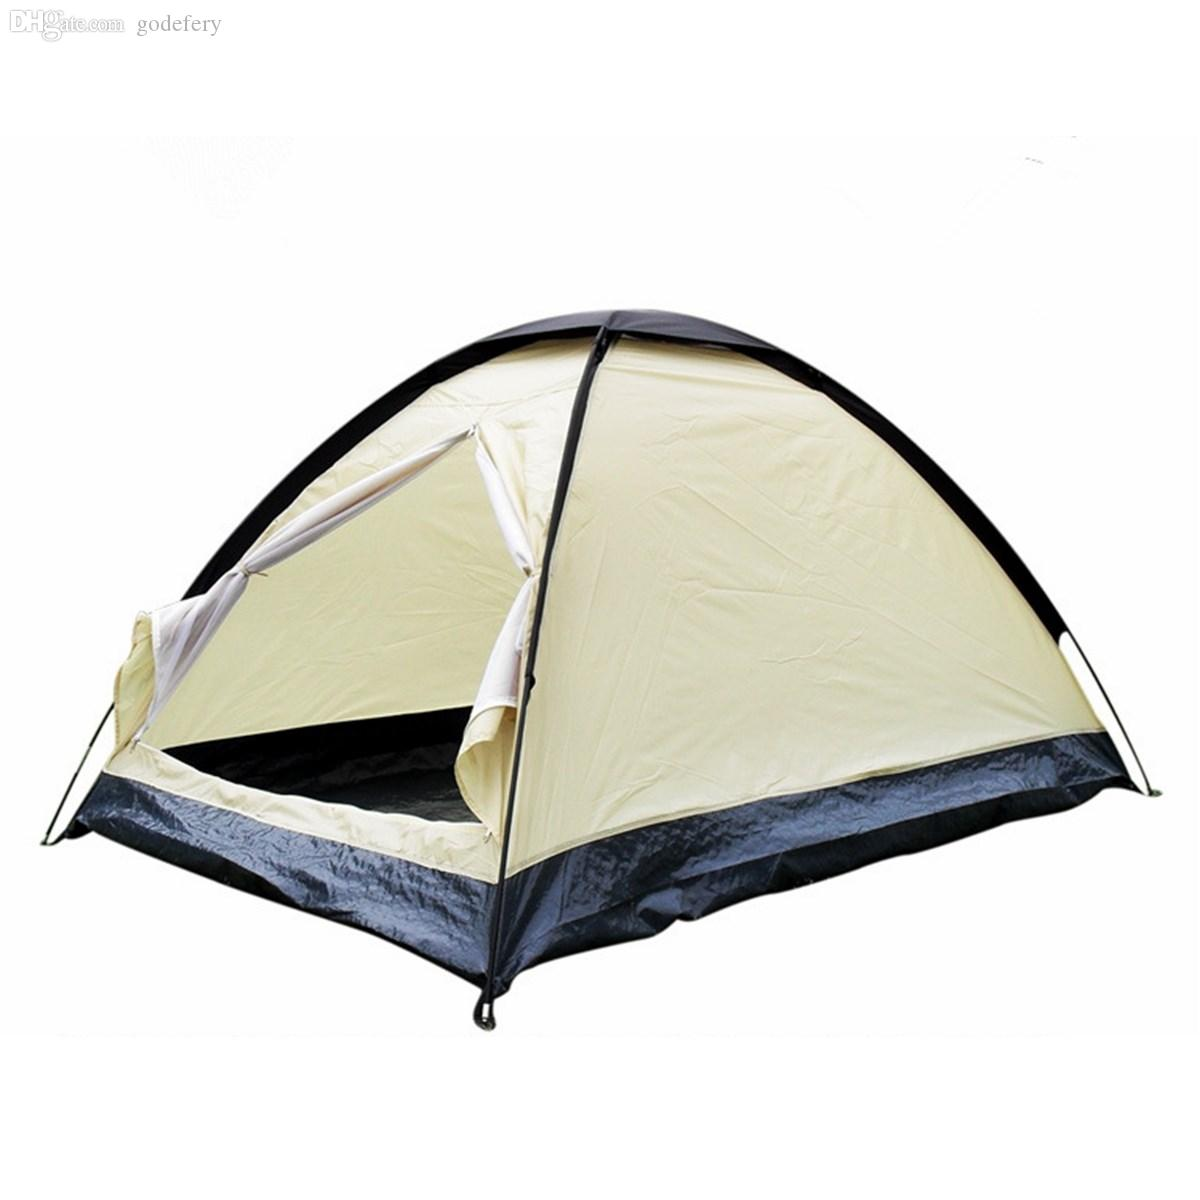 Wholesale Rainproof Polyester Ultralight 2 Person UV Protection Outdoor Travel C&ing Hiking Dome Tent Single Layer Beach Shelter Tent Cheap Tents For ...  sc 1 st  DHgate.com & Wholesale Rainproof Polyester Ultralight 2 Person UV Protection ...